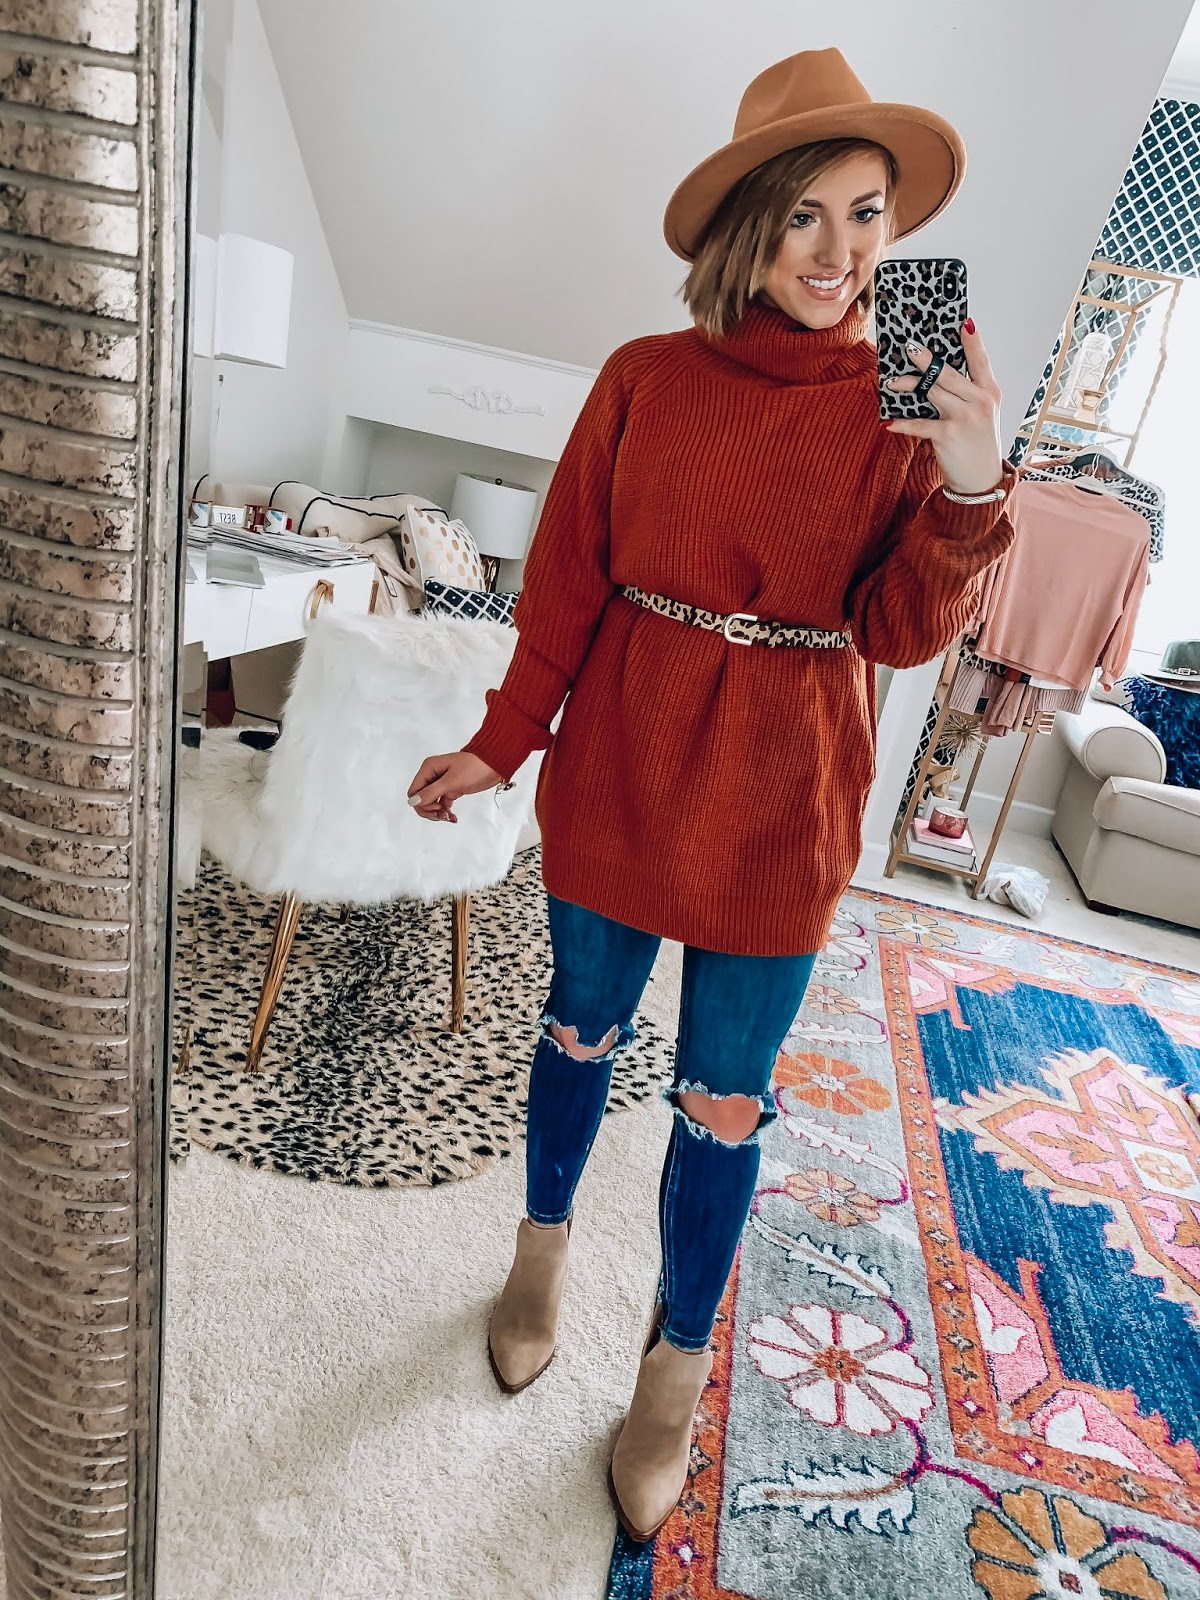 Recent Amazon Finds: $33 Oversized Sweater - Something Delightful Blog #fallstyle #affordablefashion #amazonfashion